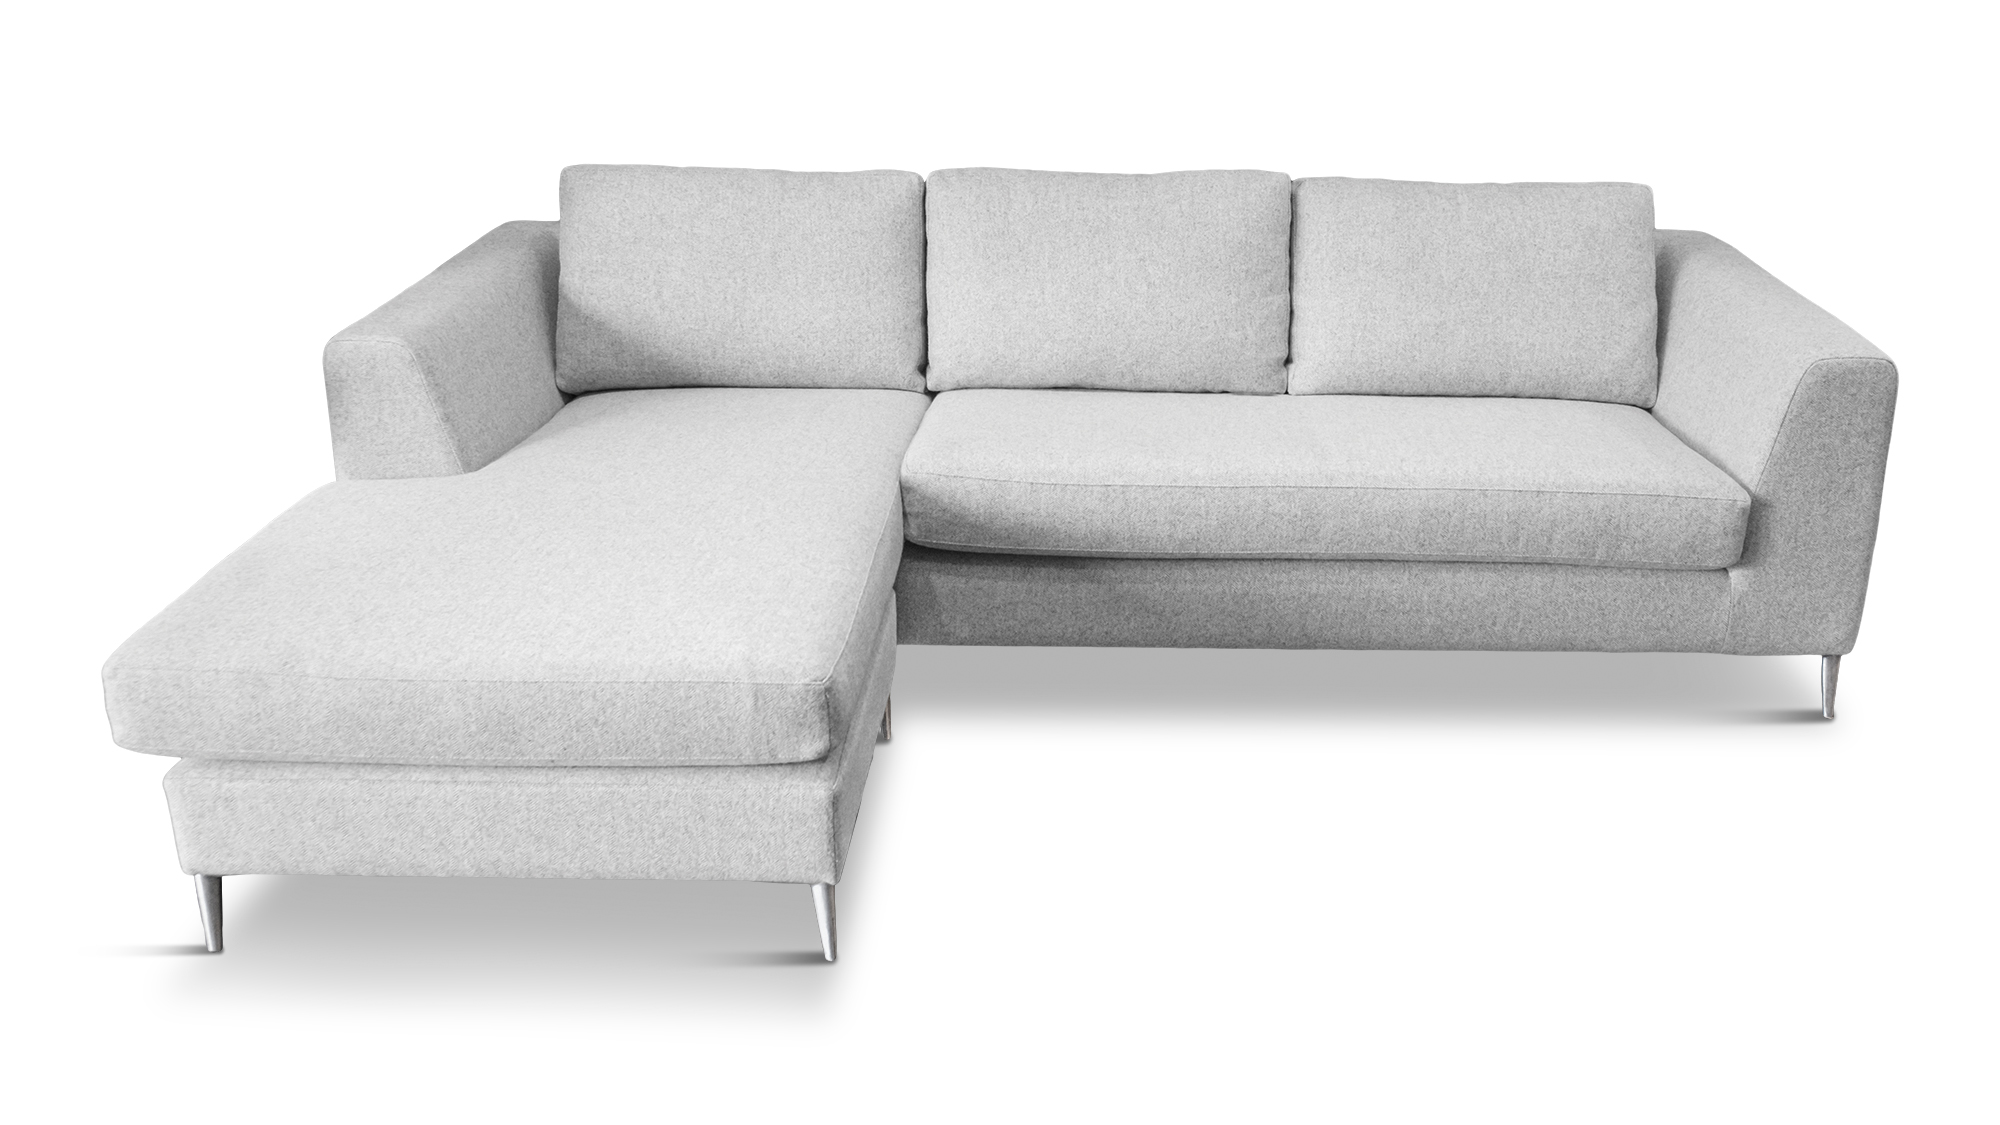 Big Save Furniture Akitio Chaise Lounge made from wool fill and clad in wool fibre